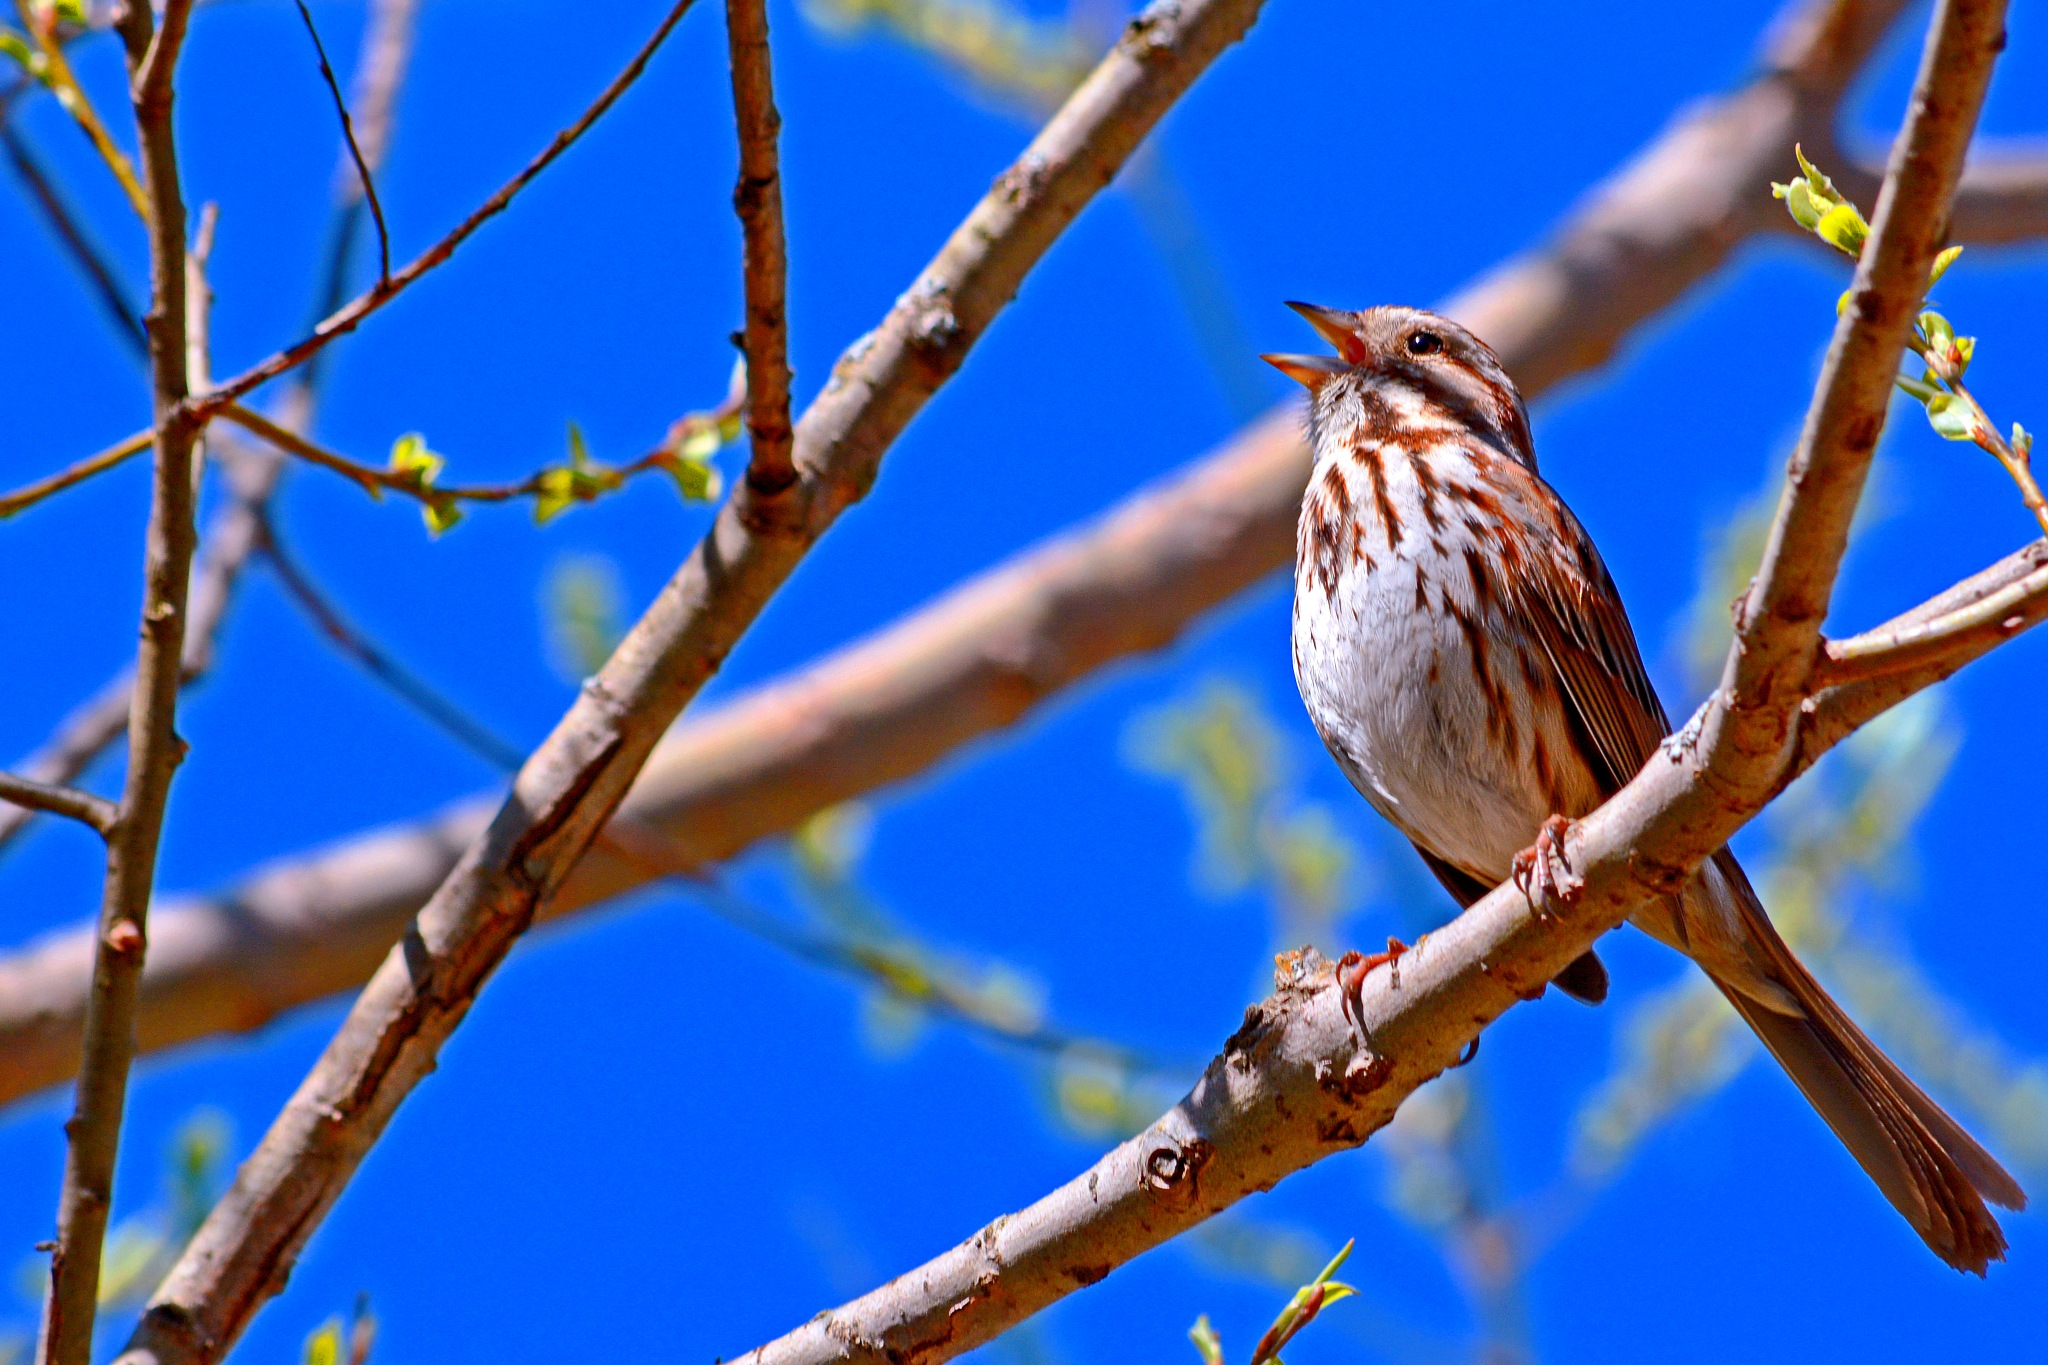 The Song Sparrow by William C. Burton